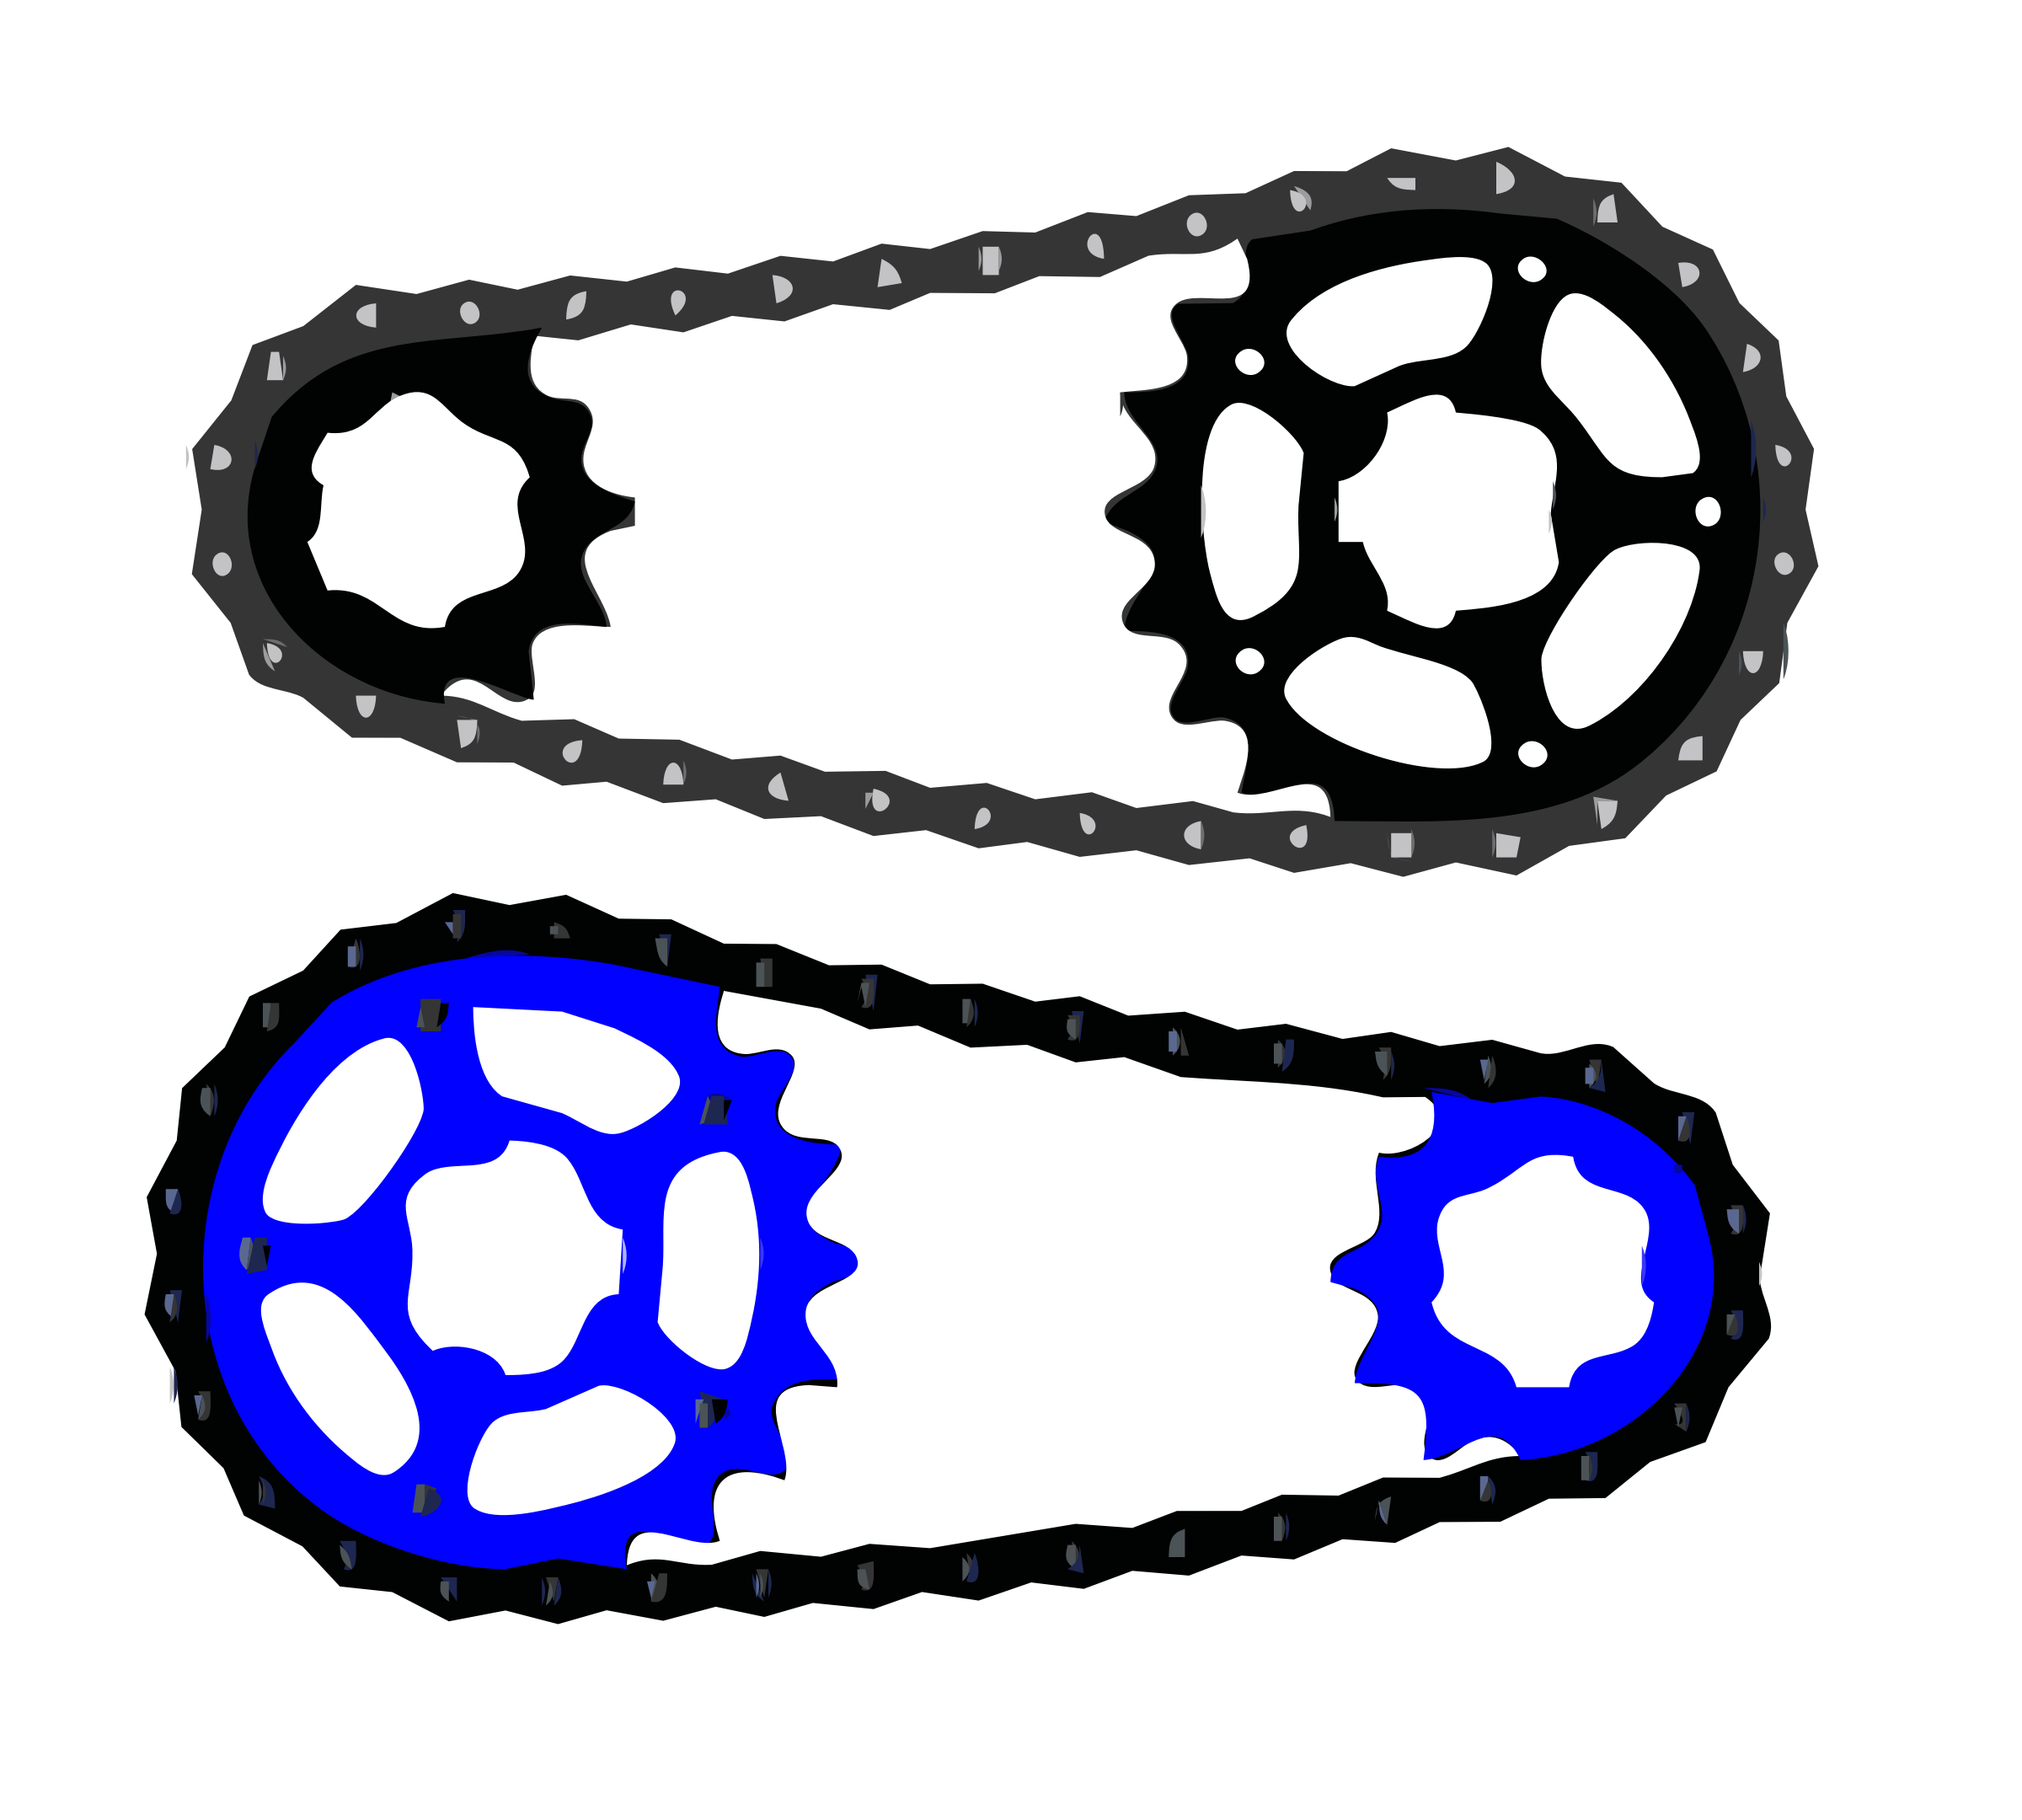 Free Cycling Chain Cliparts, Download Free Clip Art, Free.